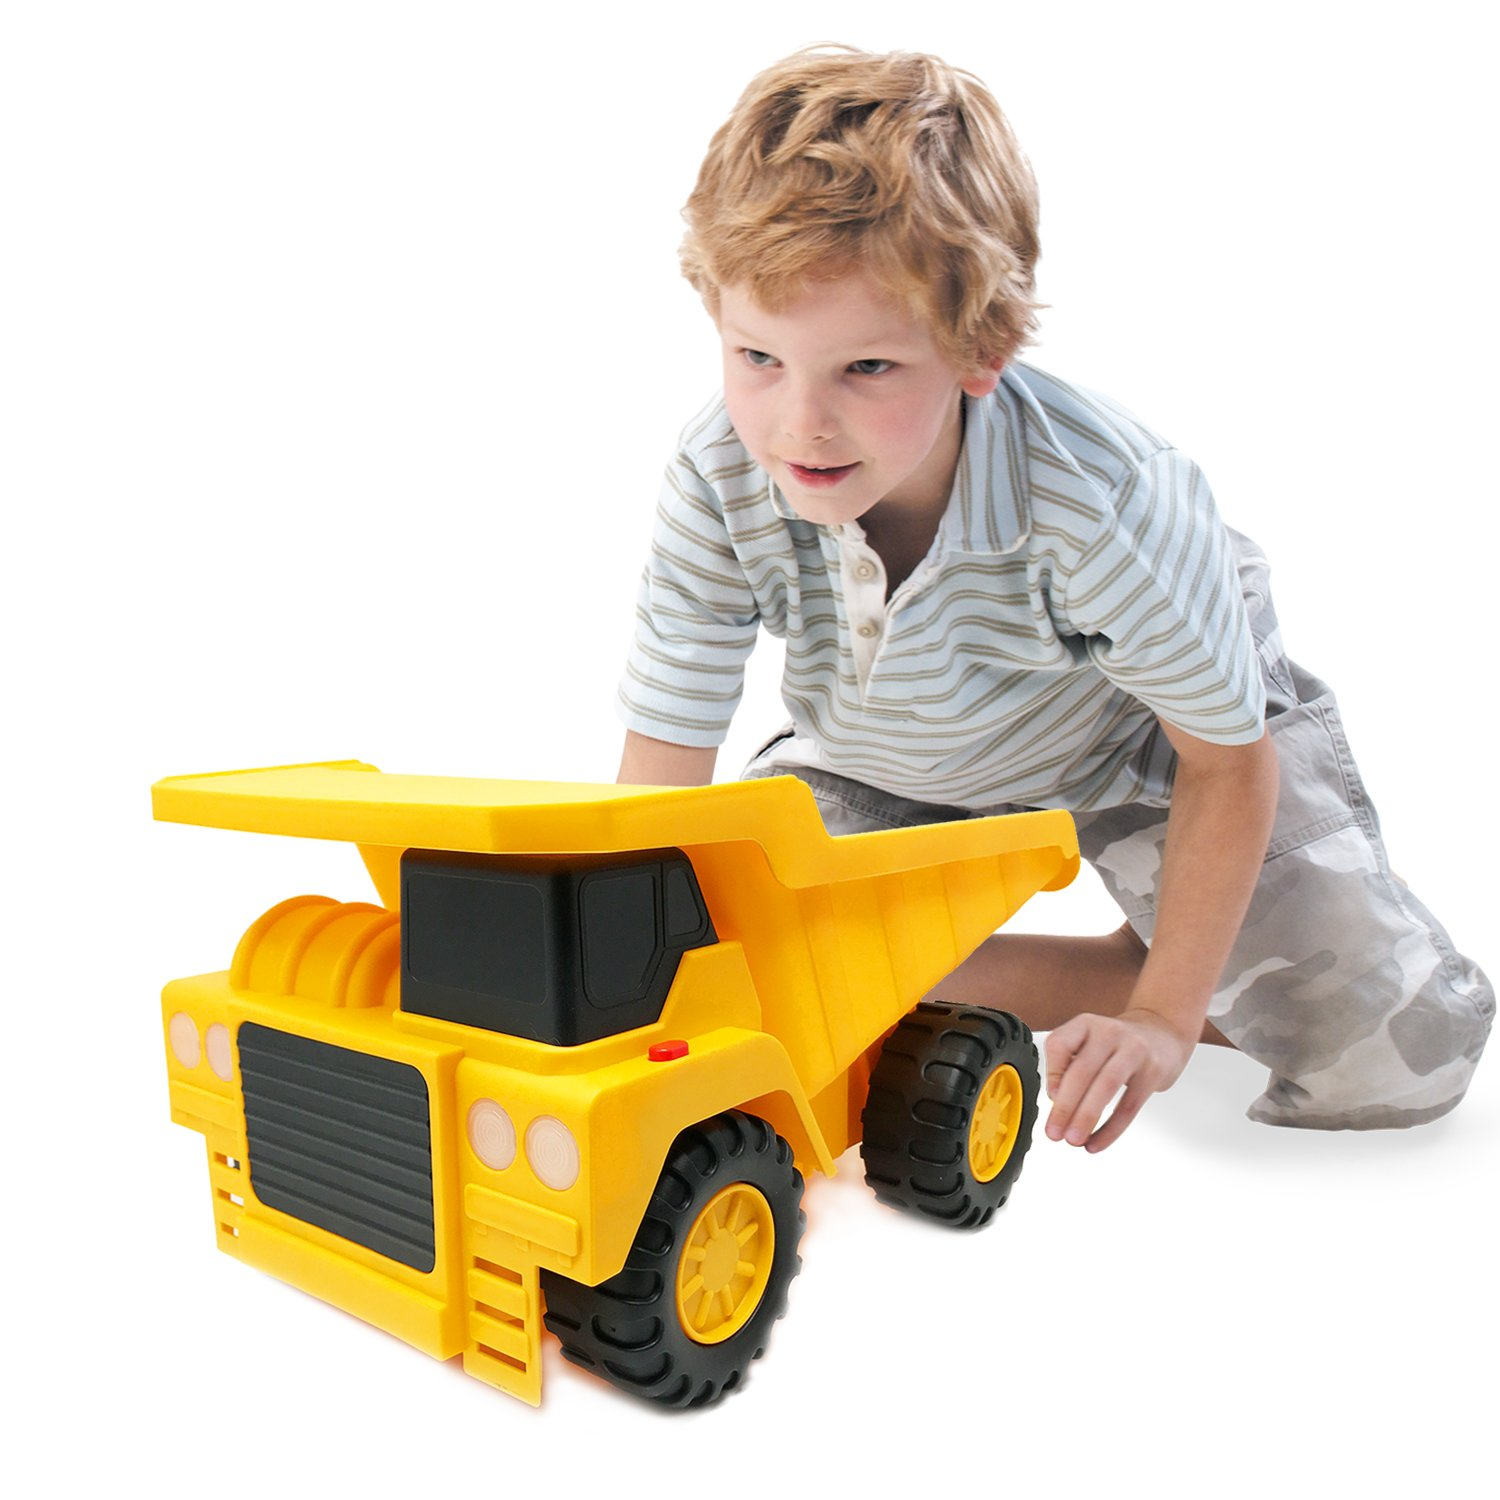 Toy Trucks For Boys : Large dump truck toy for boys kids toddler